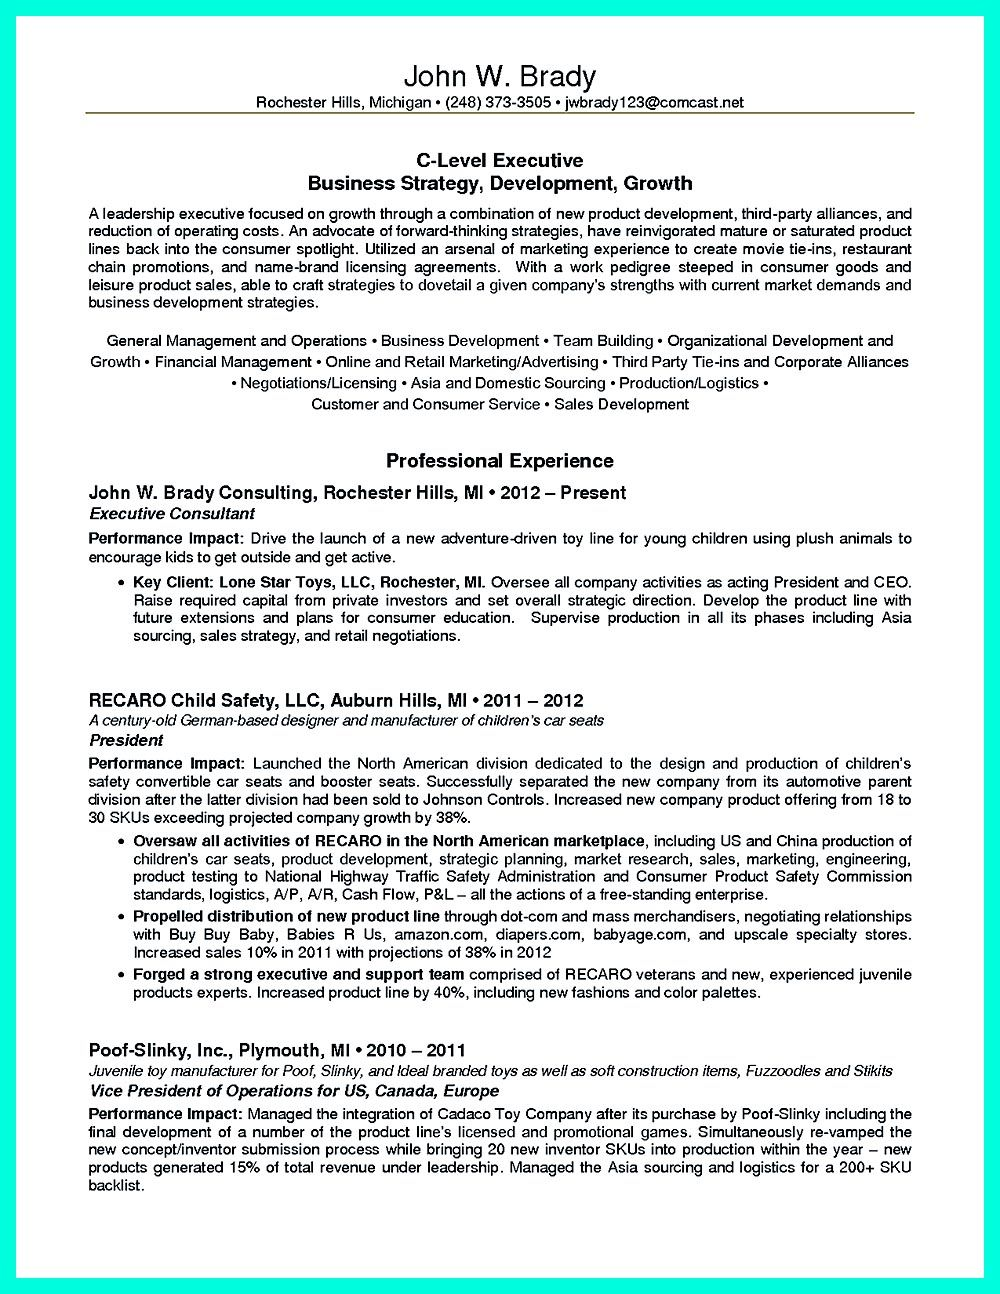 Resume Template Is An Important Thing You Need To Think